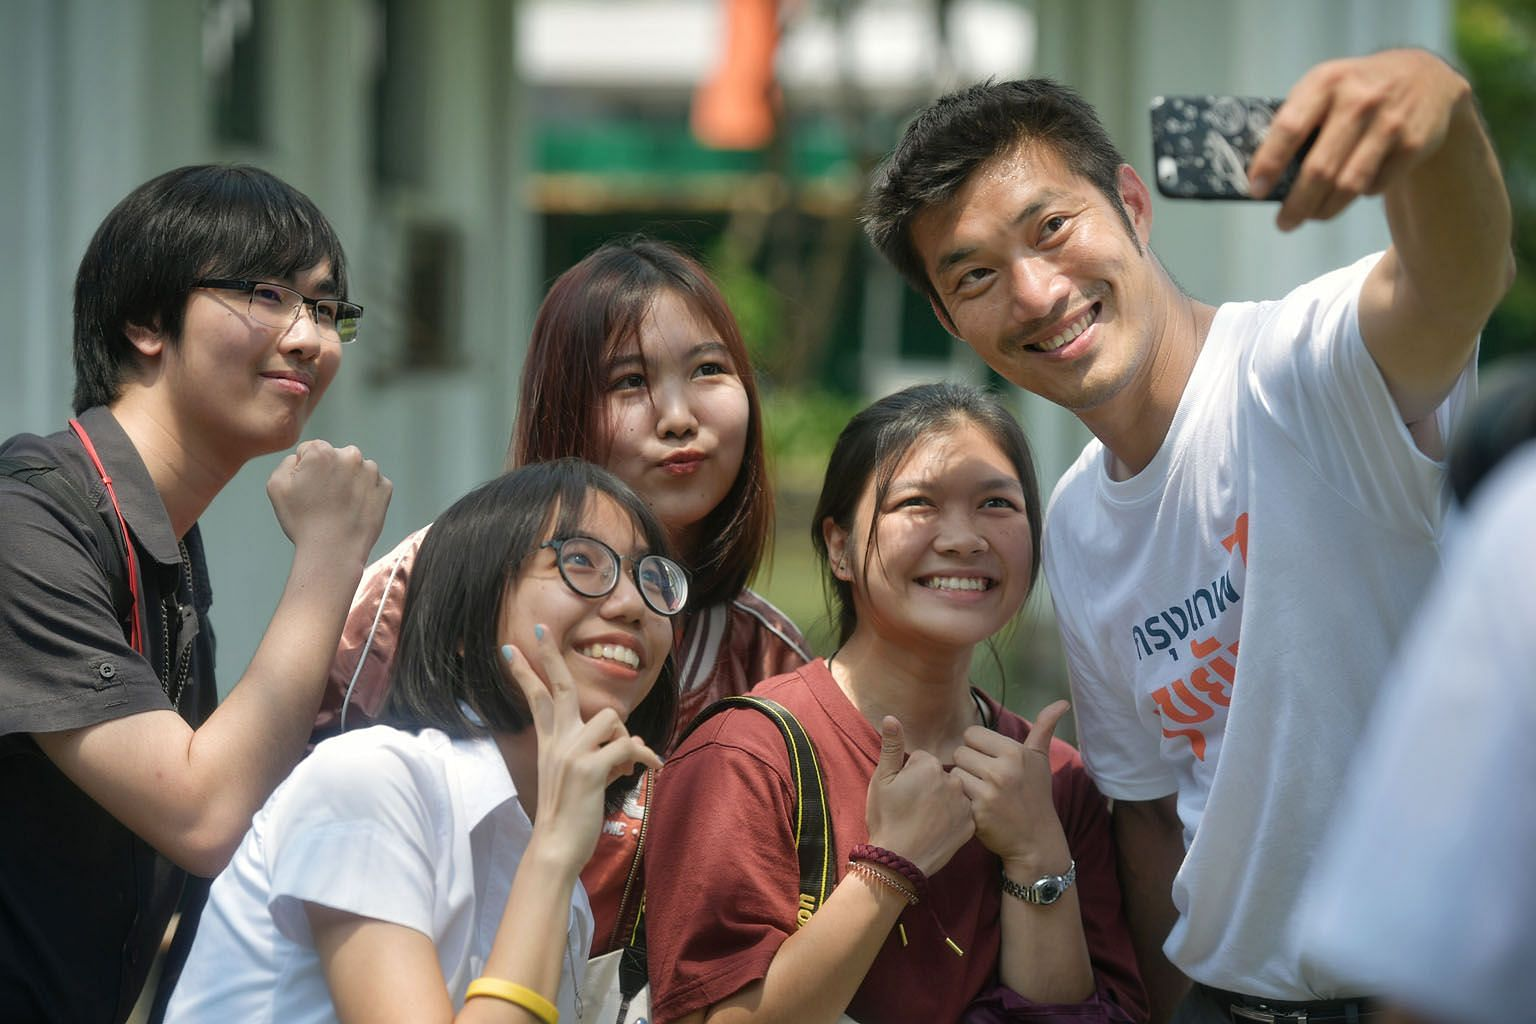 Mr Thanathorn Juangroong-ruangkit, leader of the Future Forward Party, with some students while campaigning at the King Mongkut's University of Technology Thonburi. Mr Chadchart Sittipunt, one of the Pheu Thai party's prime ministerial candidates, wi